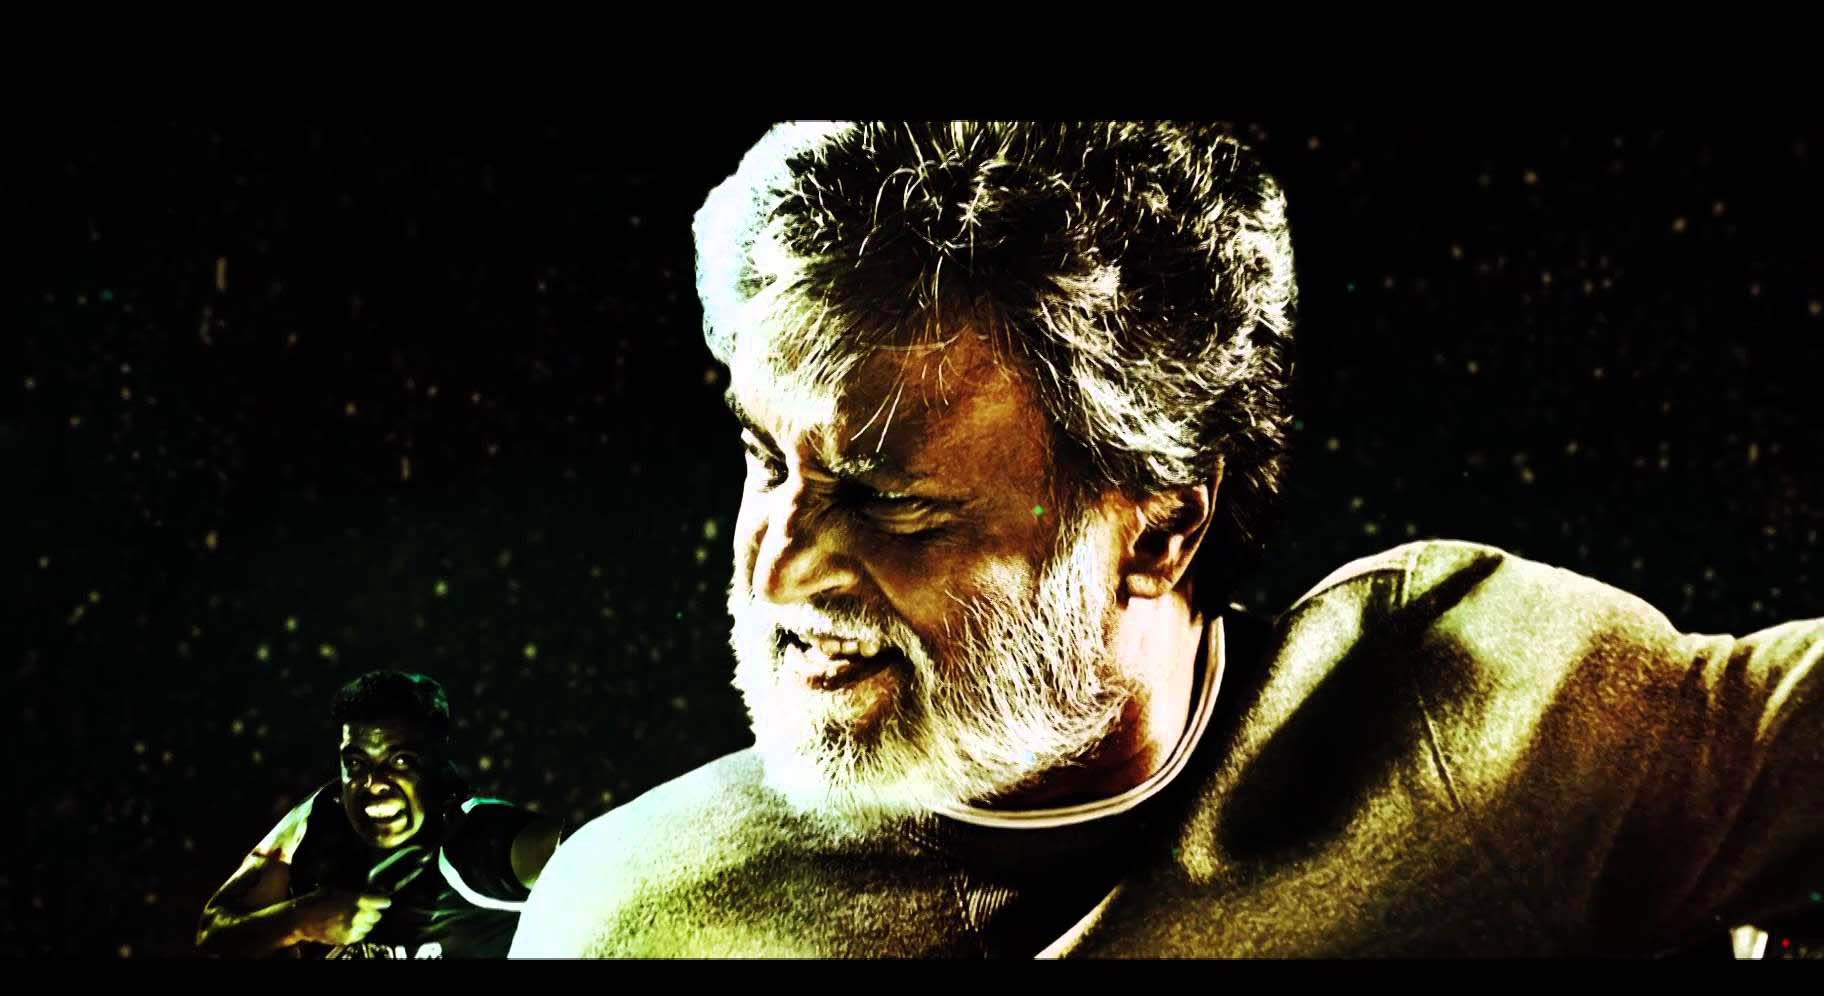 Rajinikanth Kabali Movie Wallpapers HD